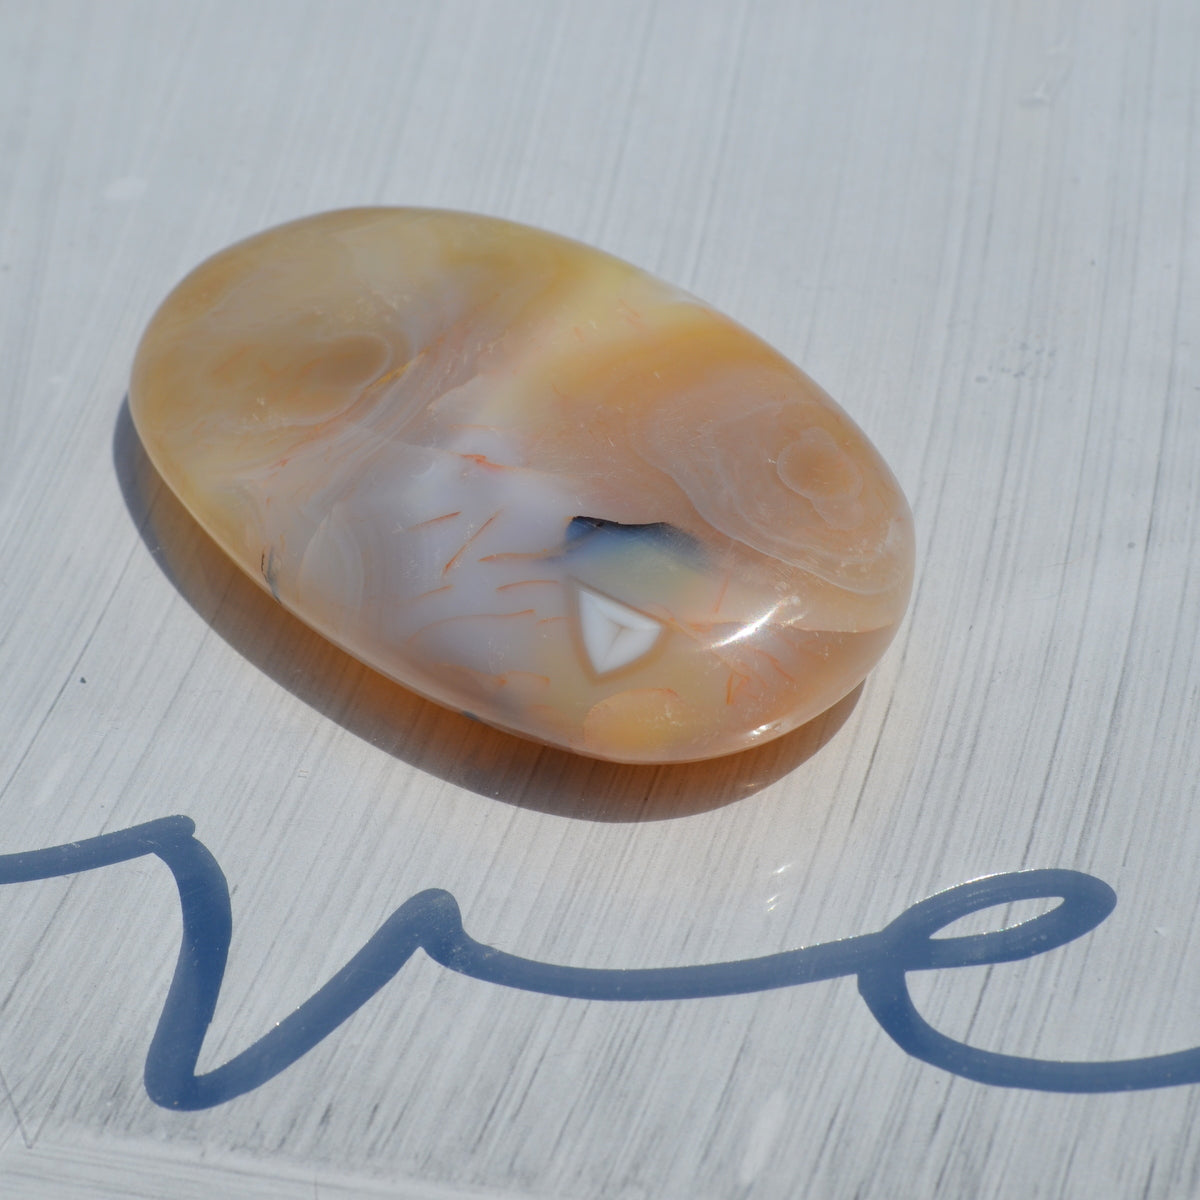 Dentritic Agate Polished Palmstone - Abundance Connection Stability - Available at Illiom Crystals - Now with Afterpay